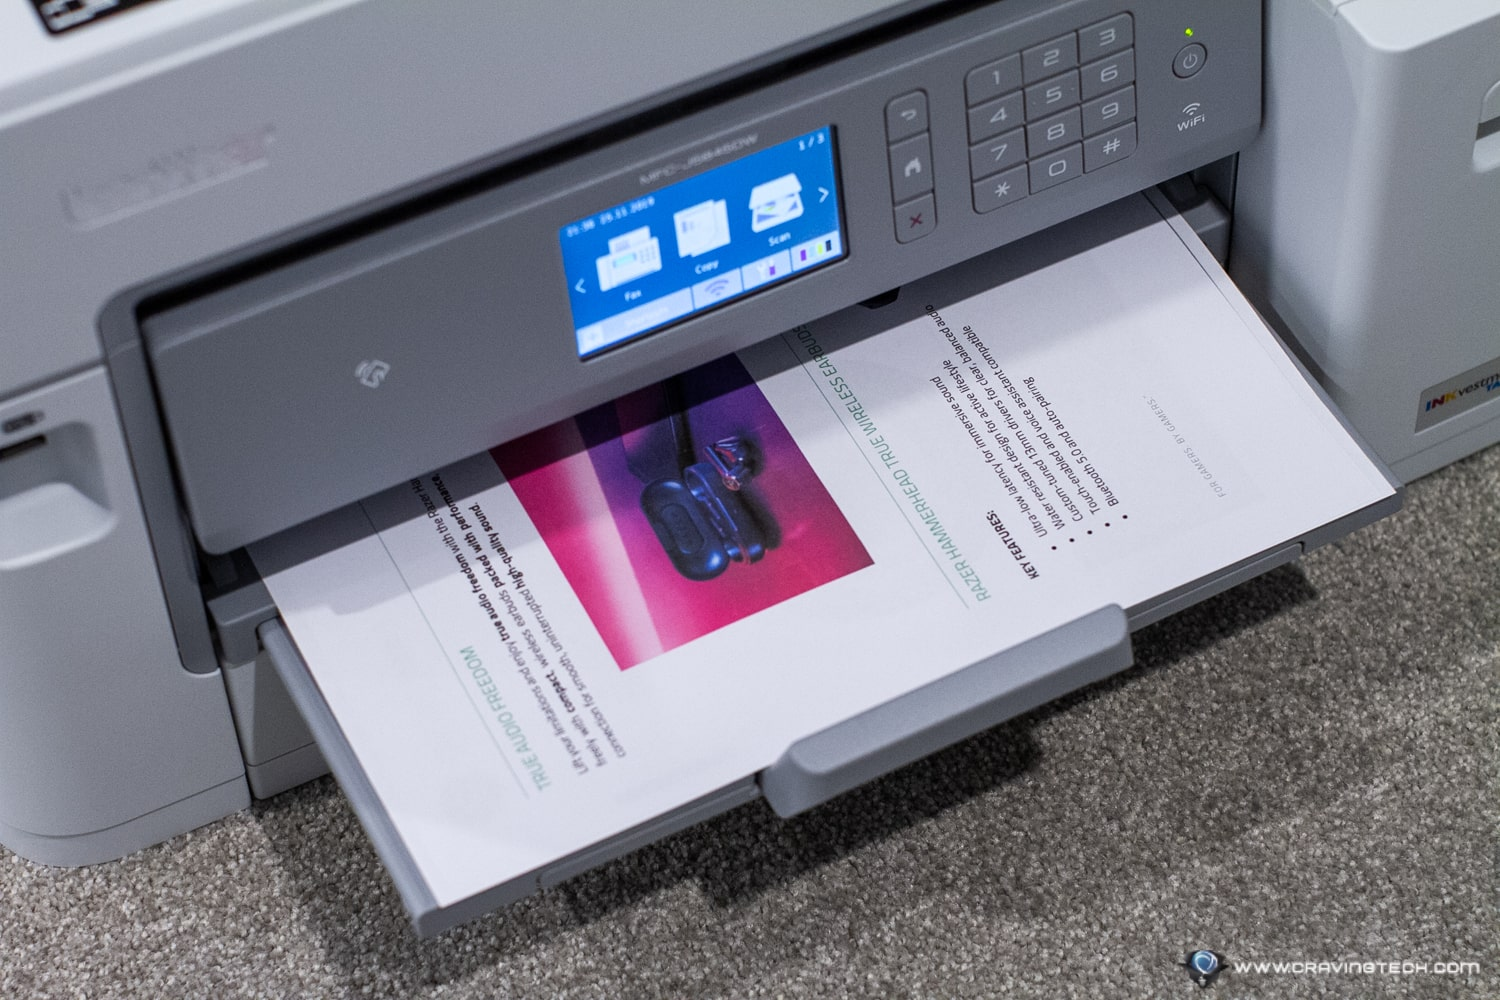 This Multi-Function Brother Printer comes with a generous 2-years of ink supply